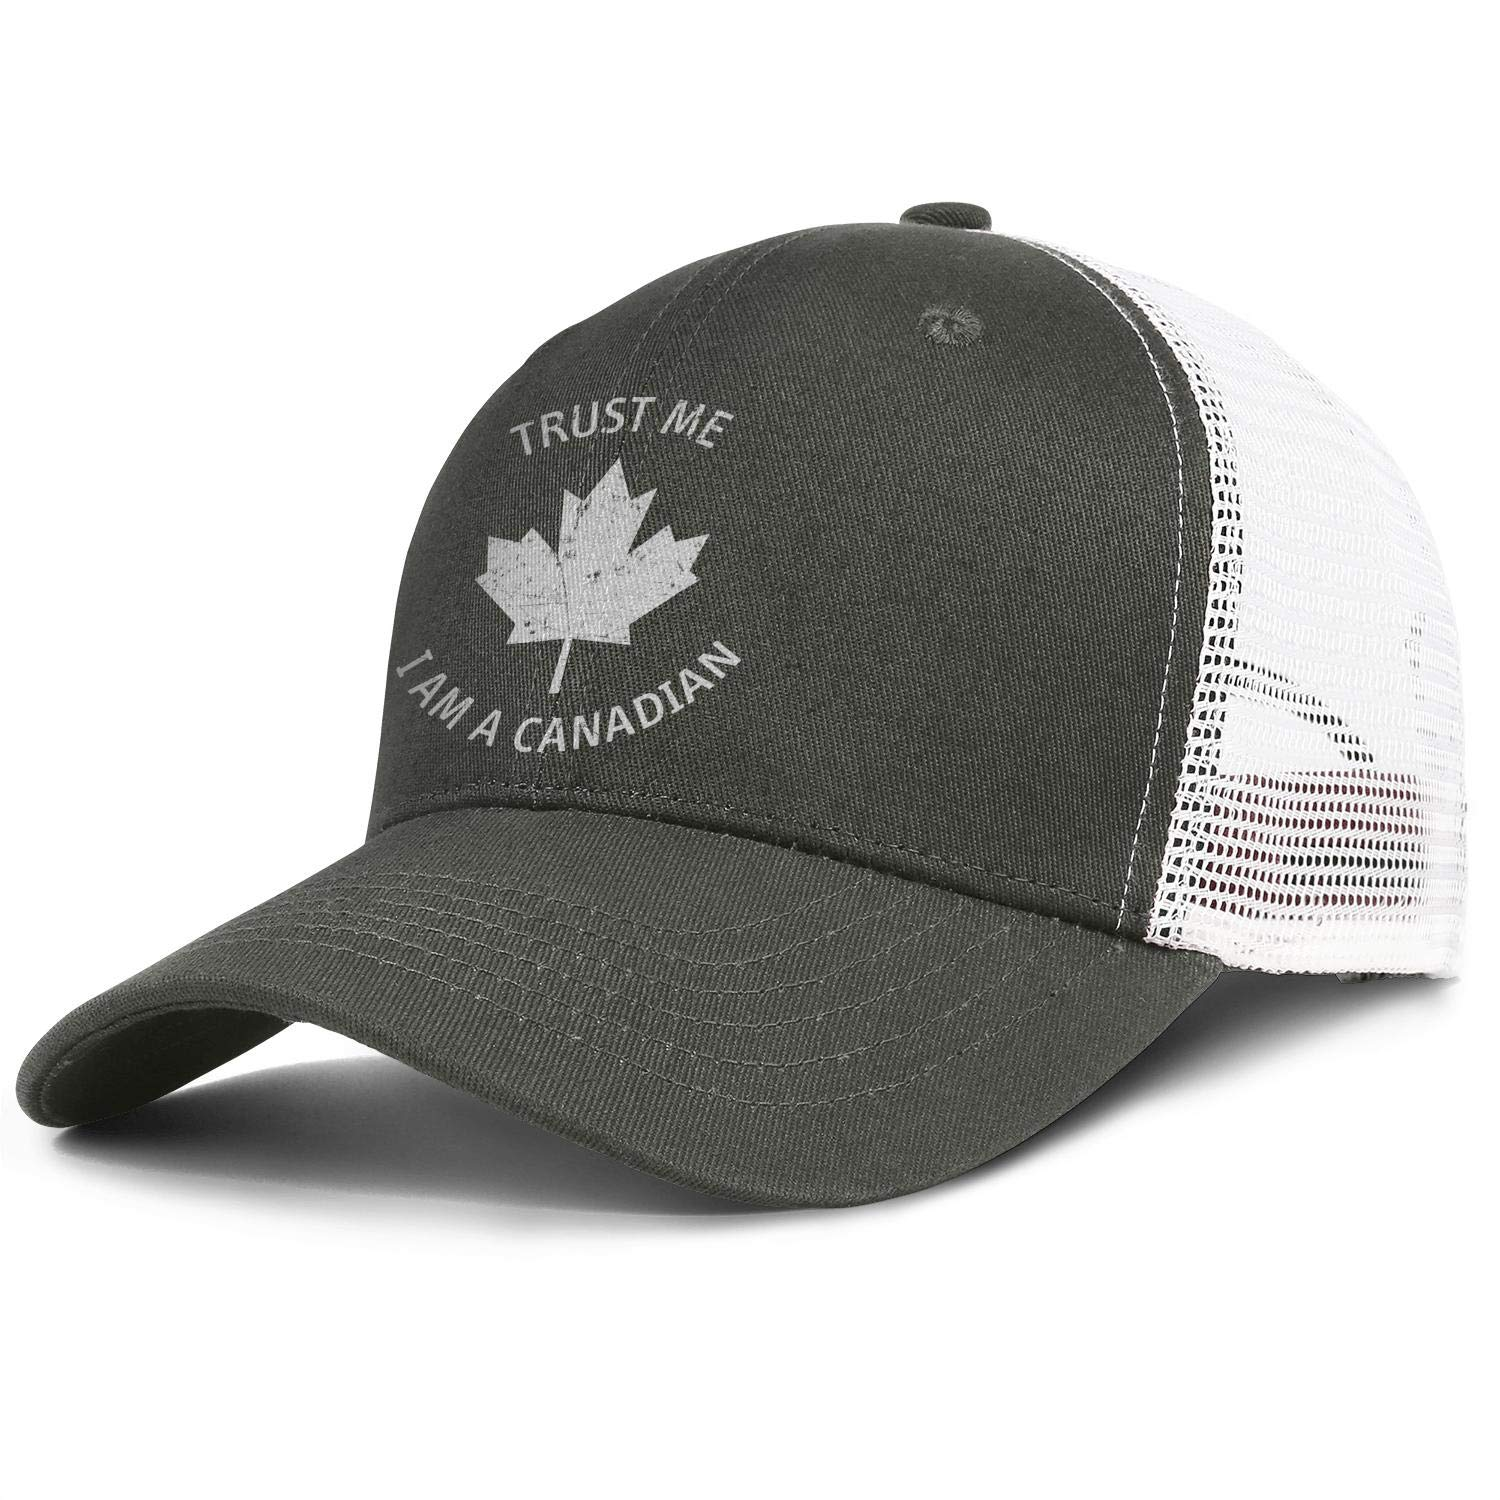 Canada Day Trust Me I Am a Canadian Unisex Mesh Back Cap Ultra Thin Running Hats Adjustable Trucker Baseball Caps